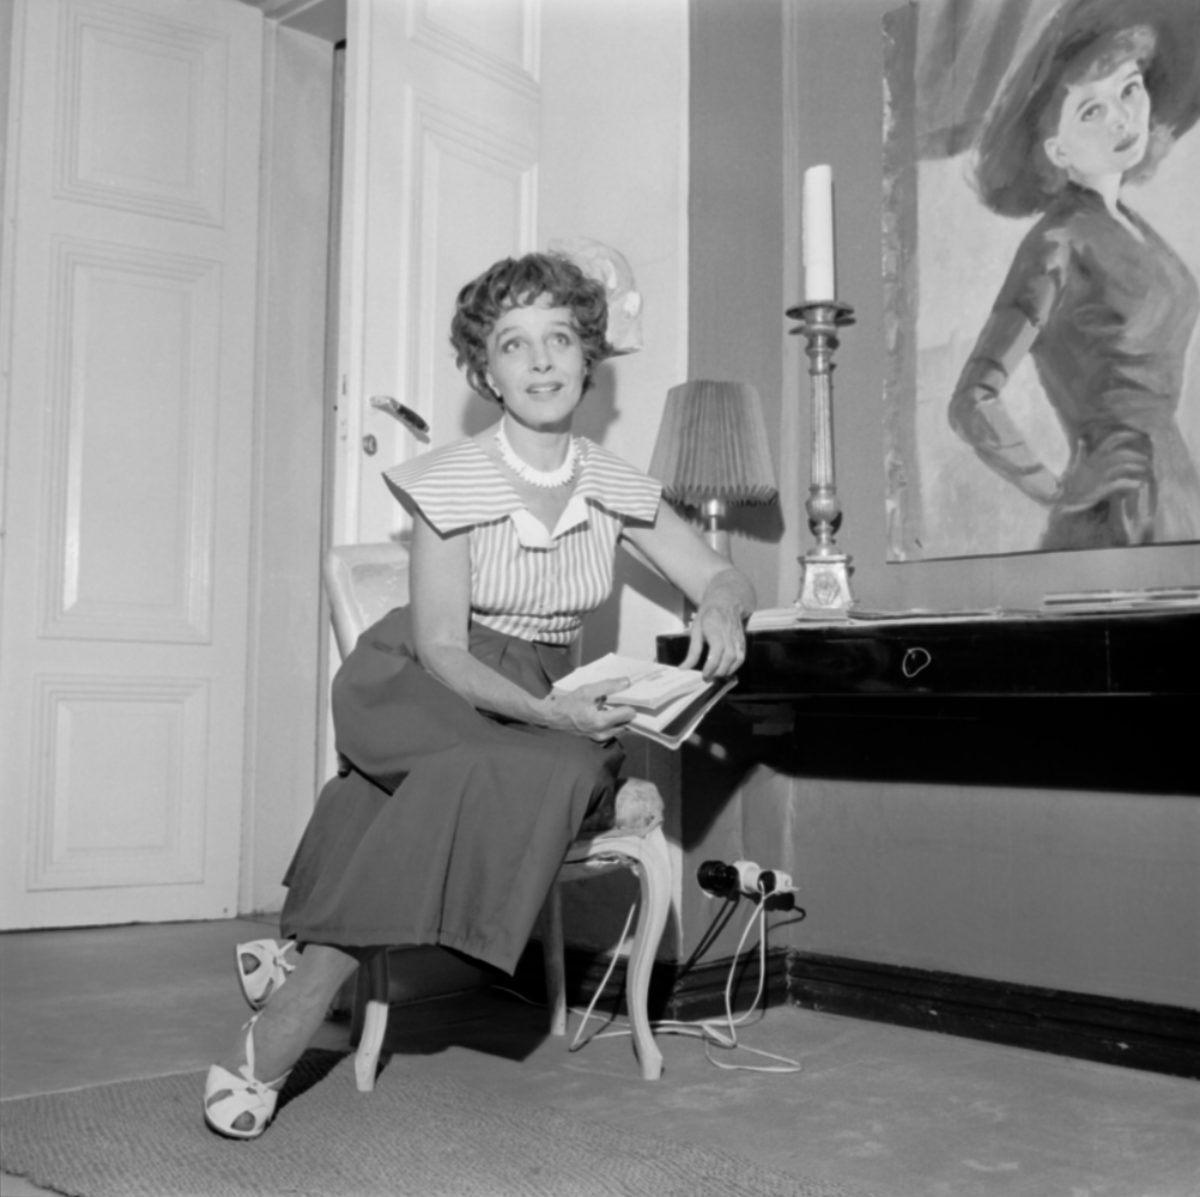 Actor Ella Eronen at home on 3 August 1959. Photo: Mauri Vuorinen / Uusi Suomi - Iltalehti / JOKA / Finnish Heritage Agency​